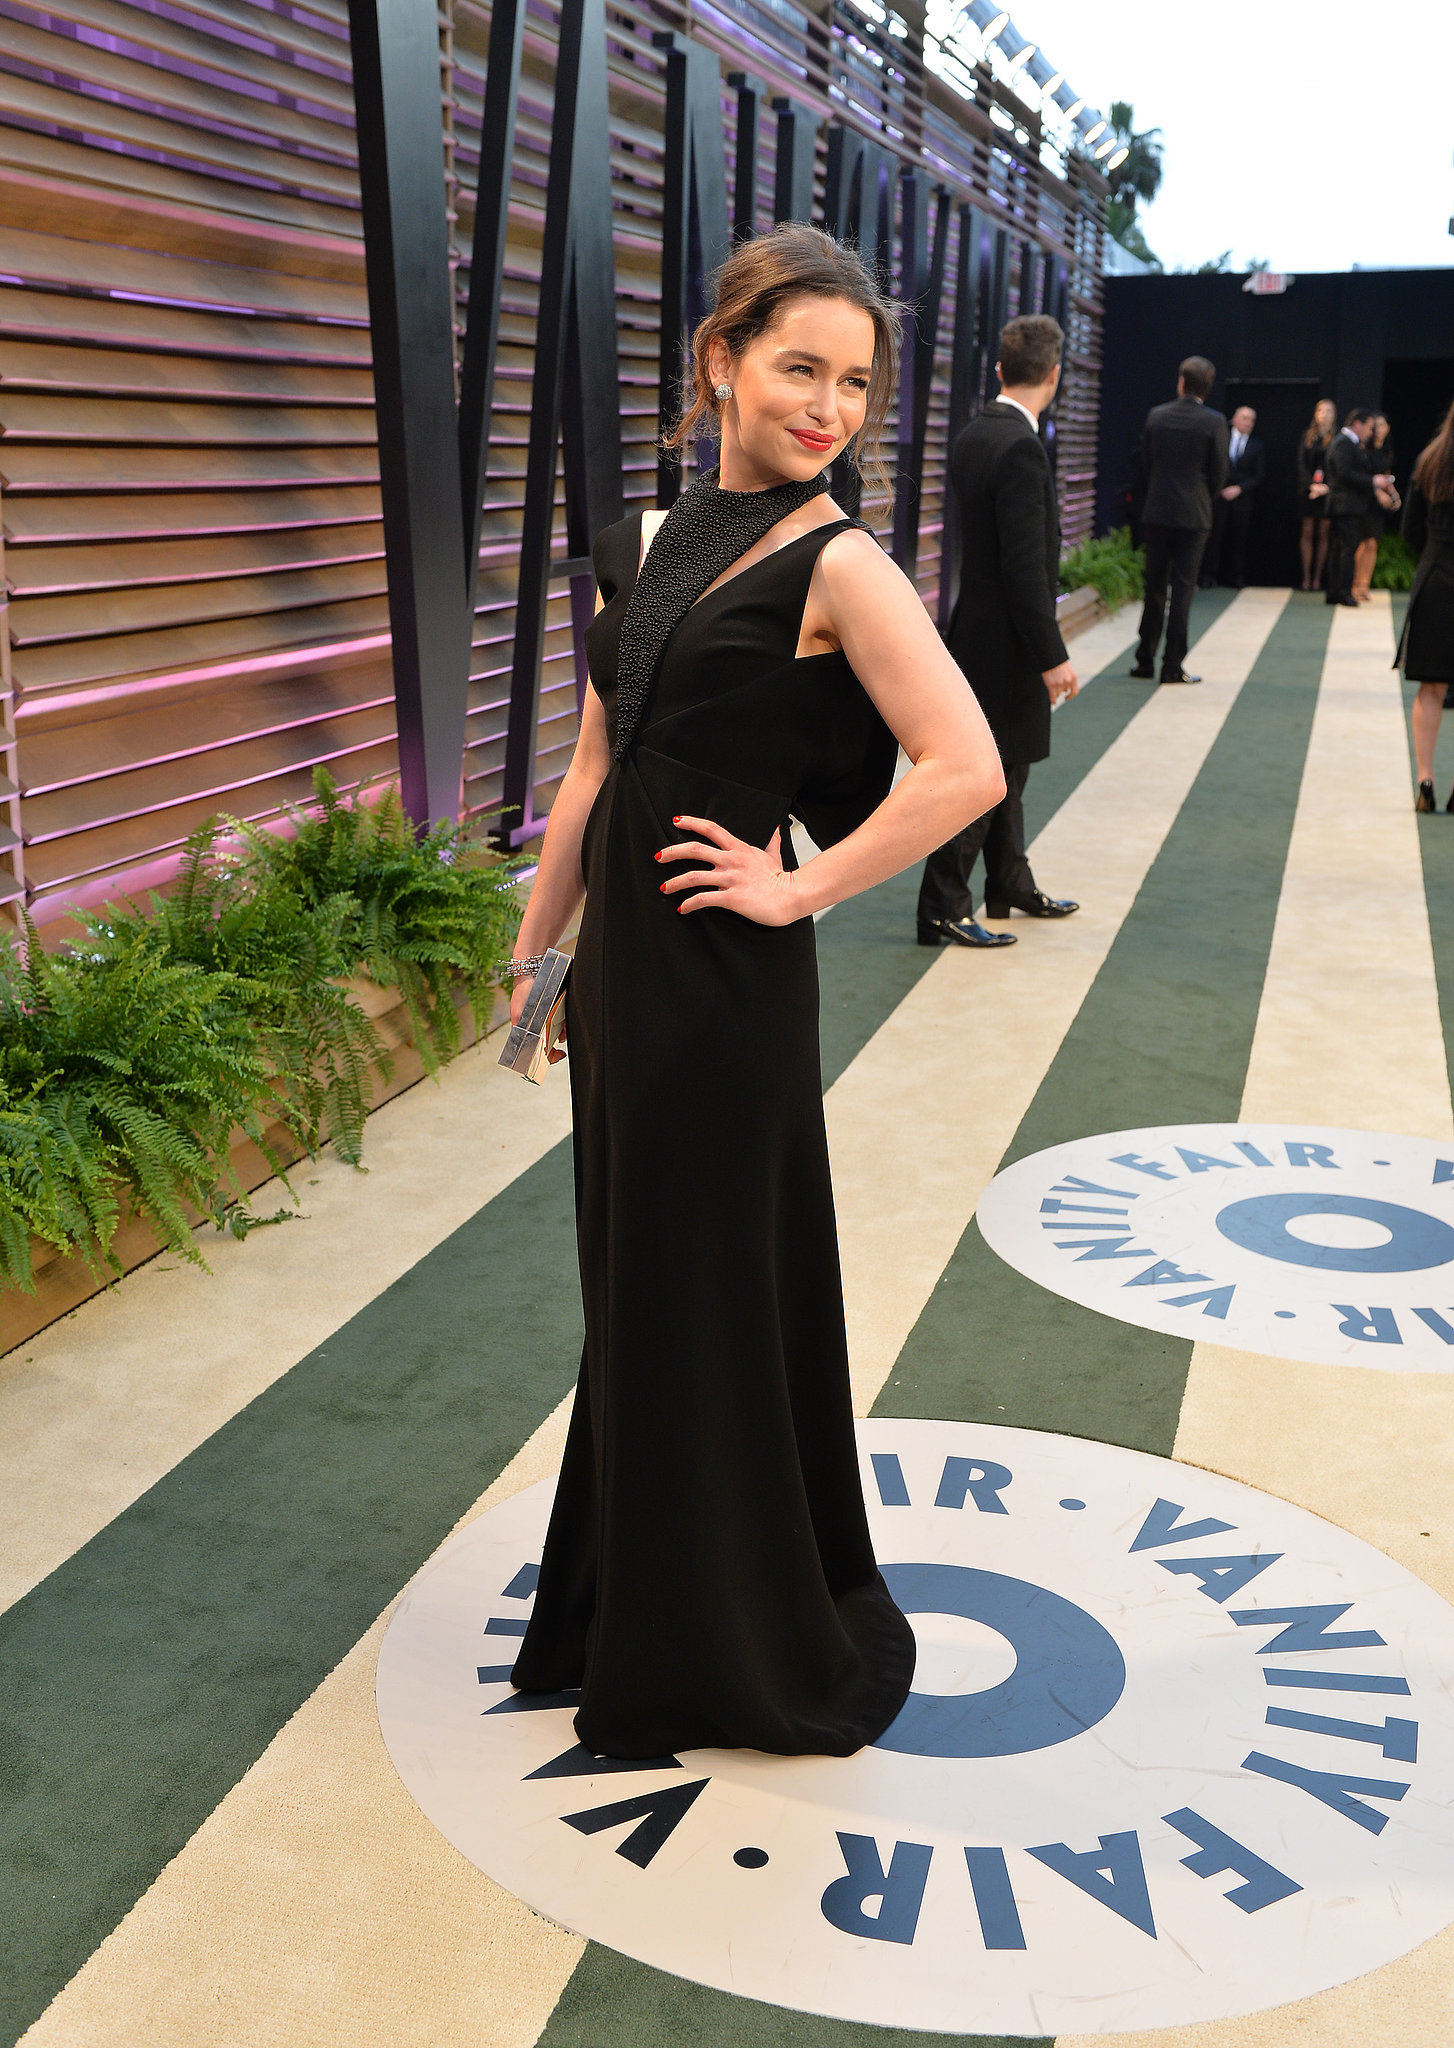 Game of Thrones star Emilia Clarke struck a pose.